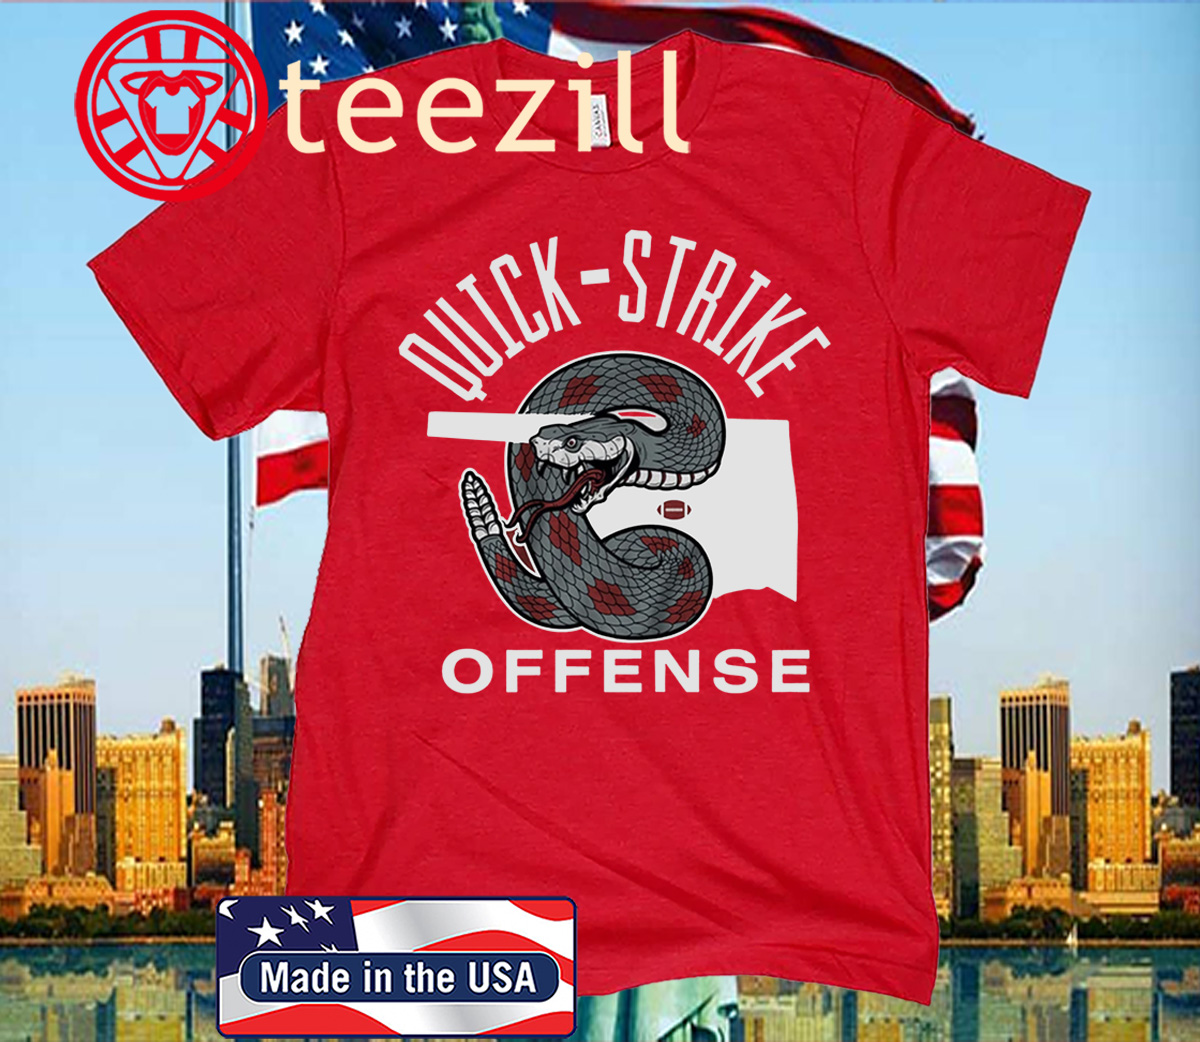 Quick Strike Offense Football T-Shirt